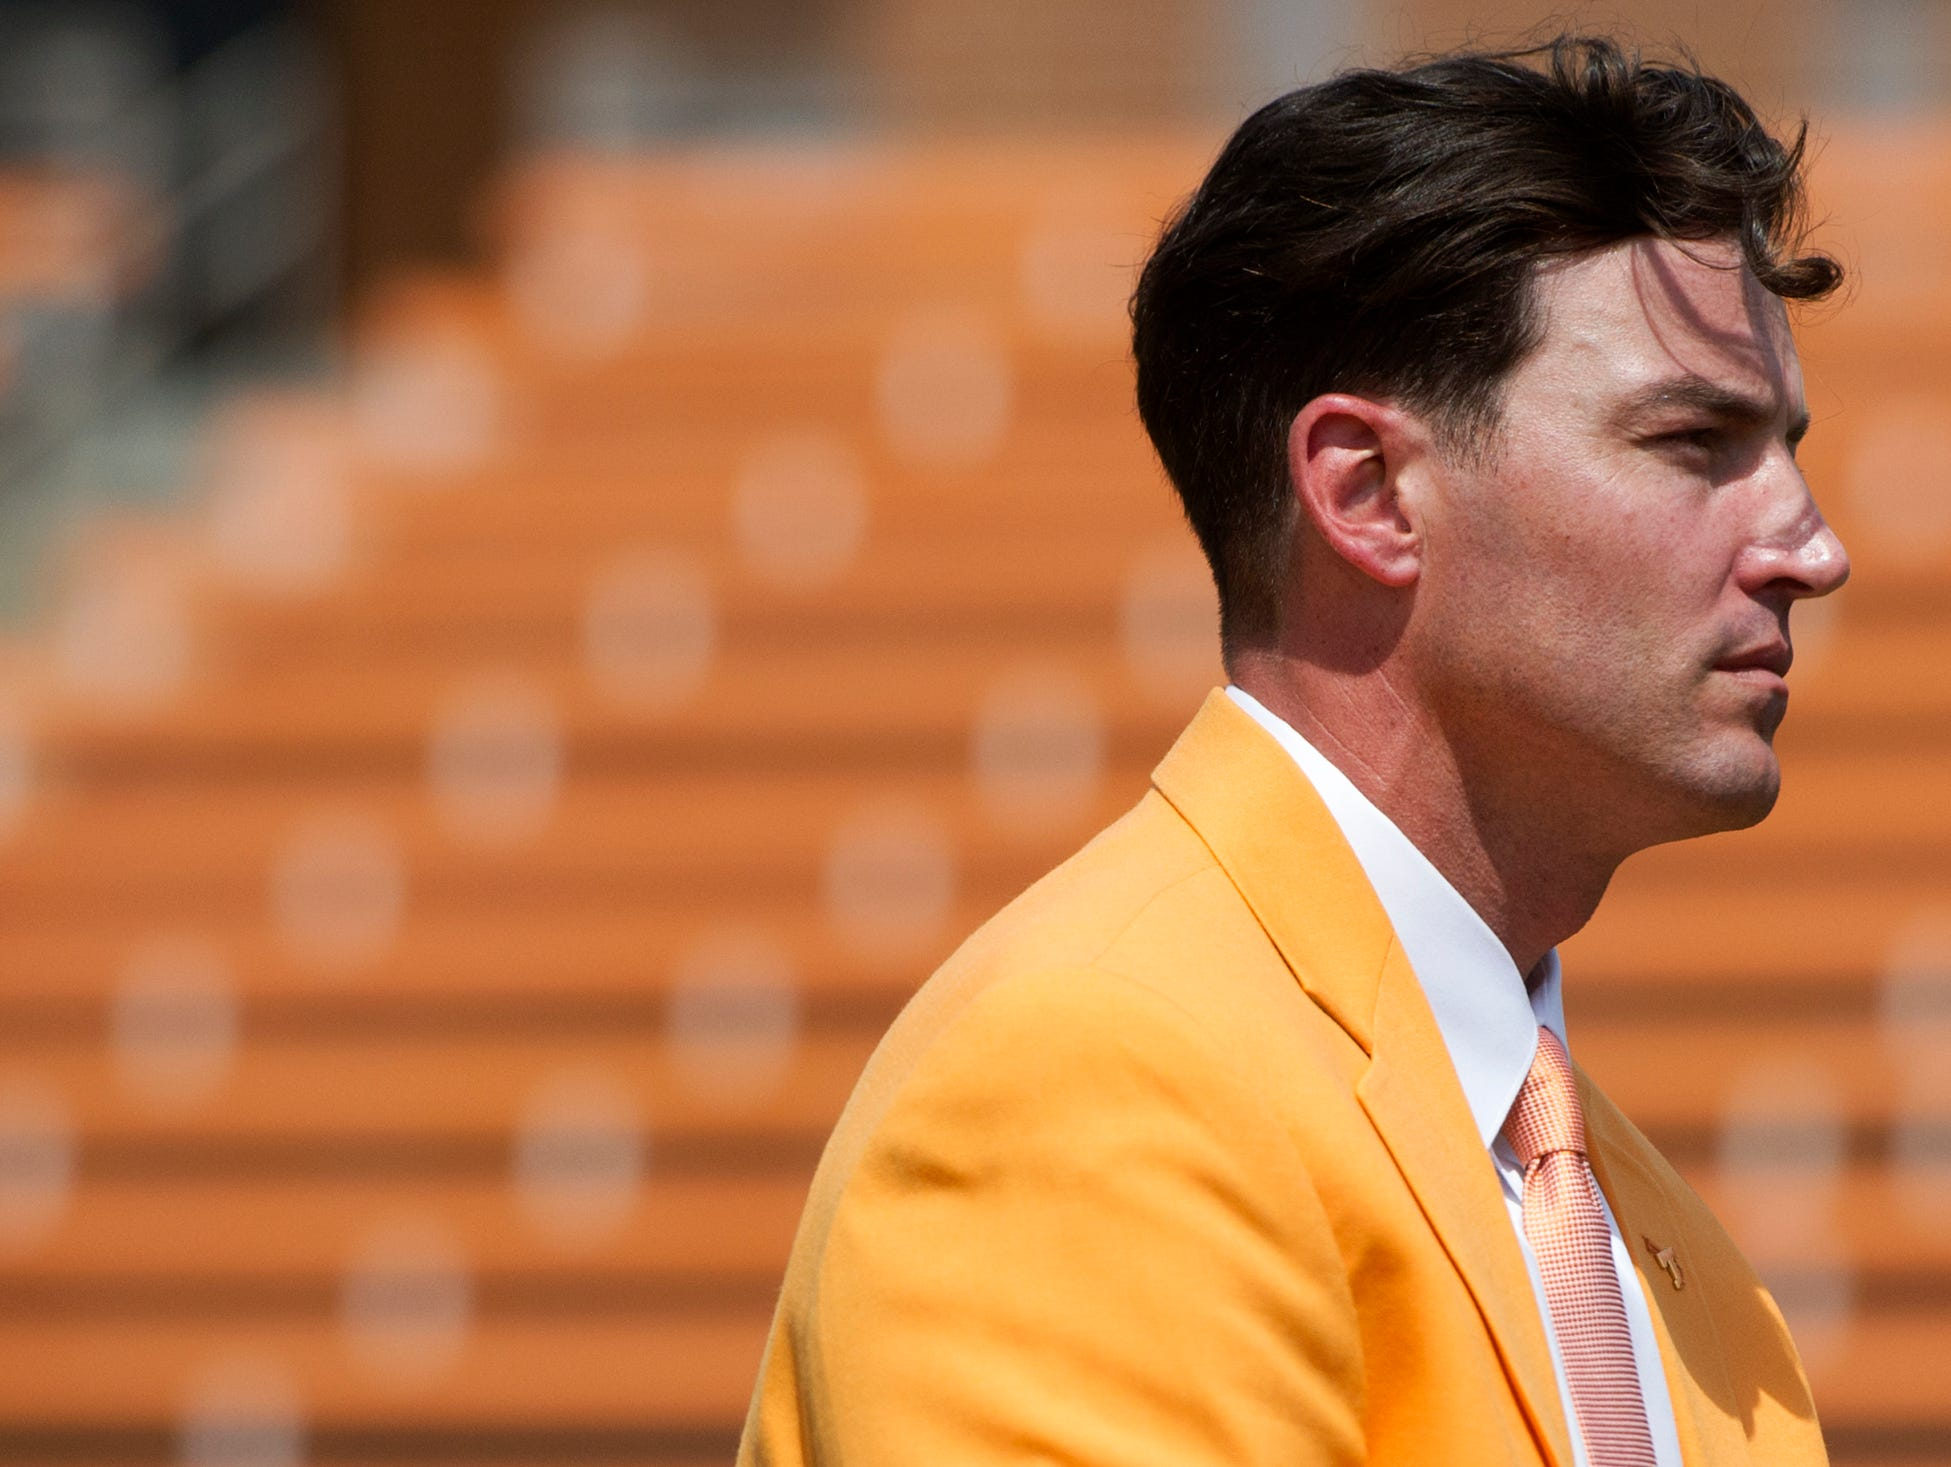 New University of Tennessee Baseball Head Coach Tony Vitello sits with his new orange blazer at a press conference introducing him to the media, at Lindsey Nelson Stadium on Friday June 9, 2017.